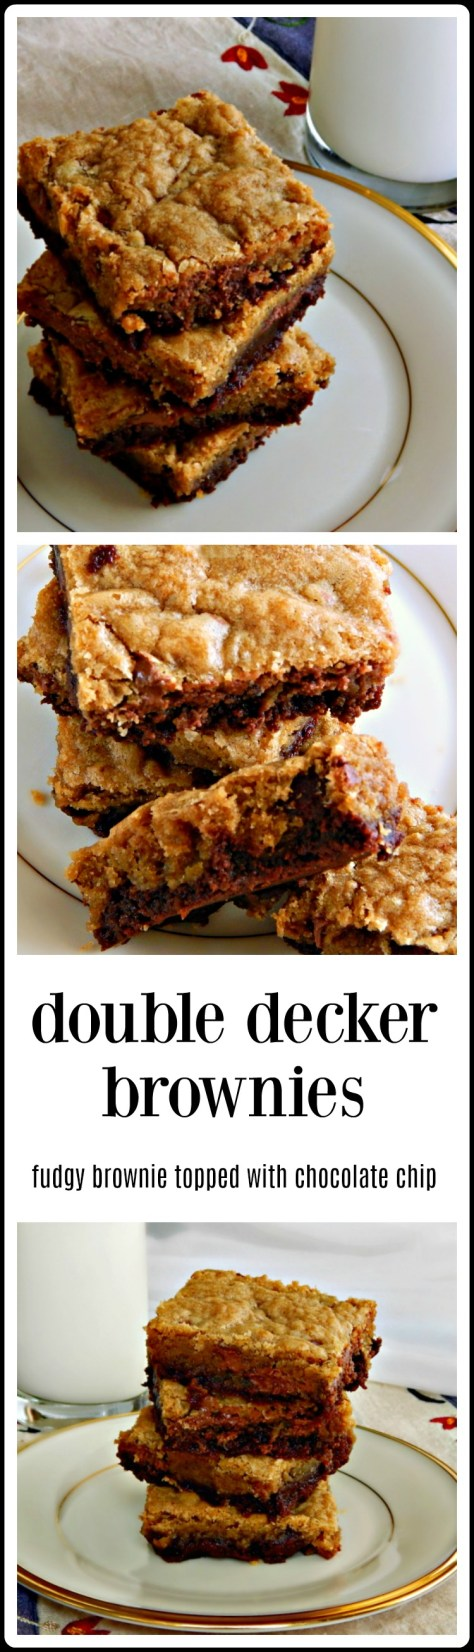 Easy, mix by hand - two layer bars - chocolate chip cookie on top, fudgy brownie on bottom